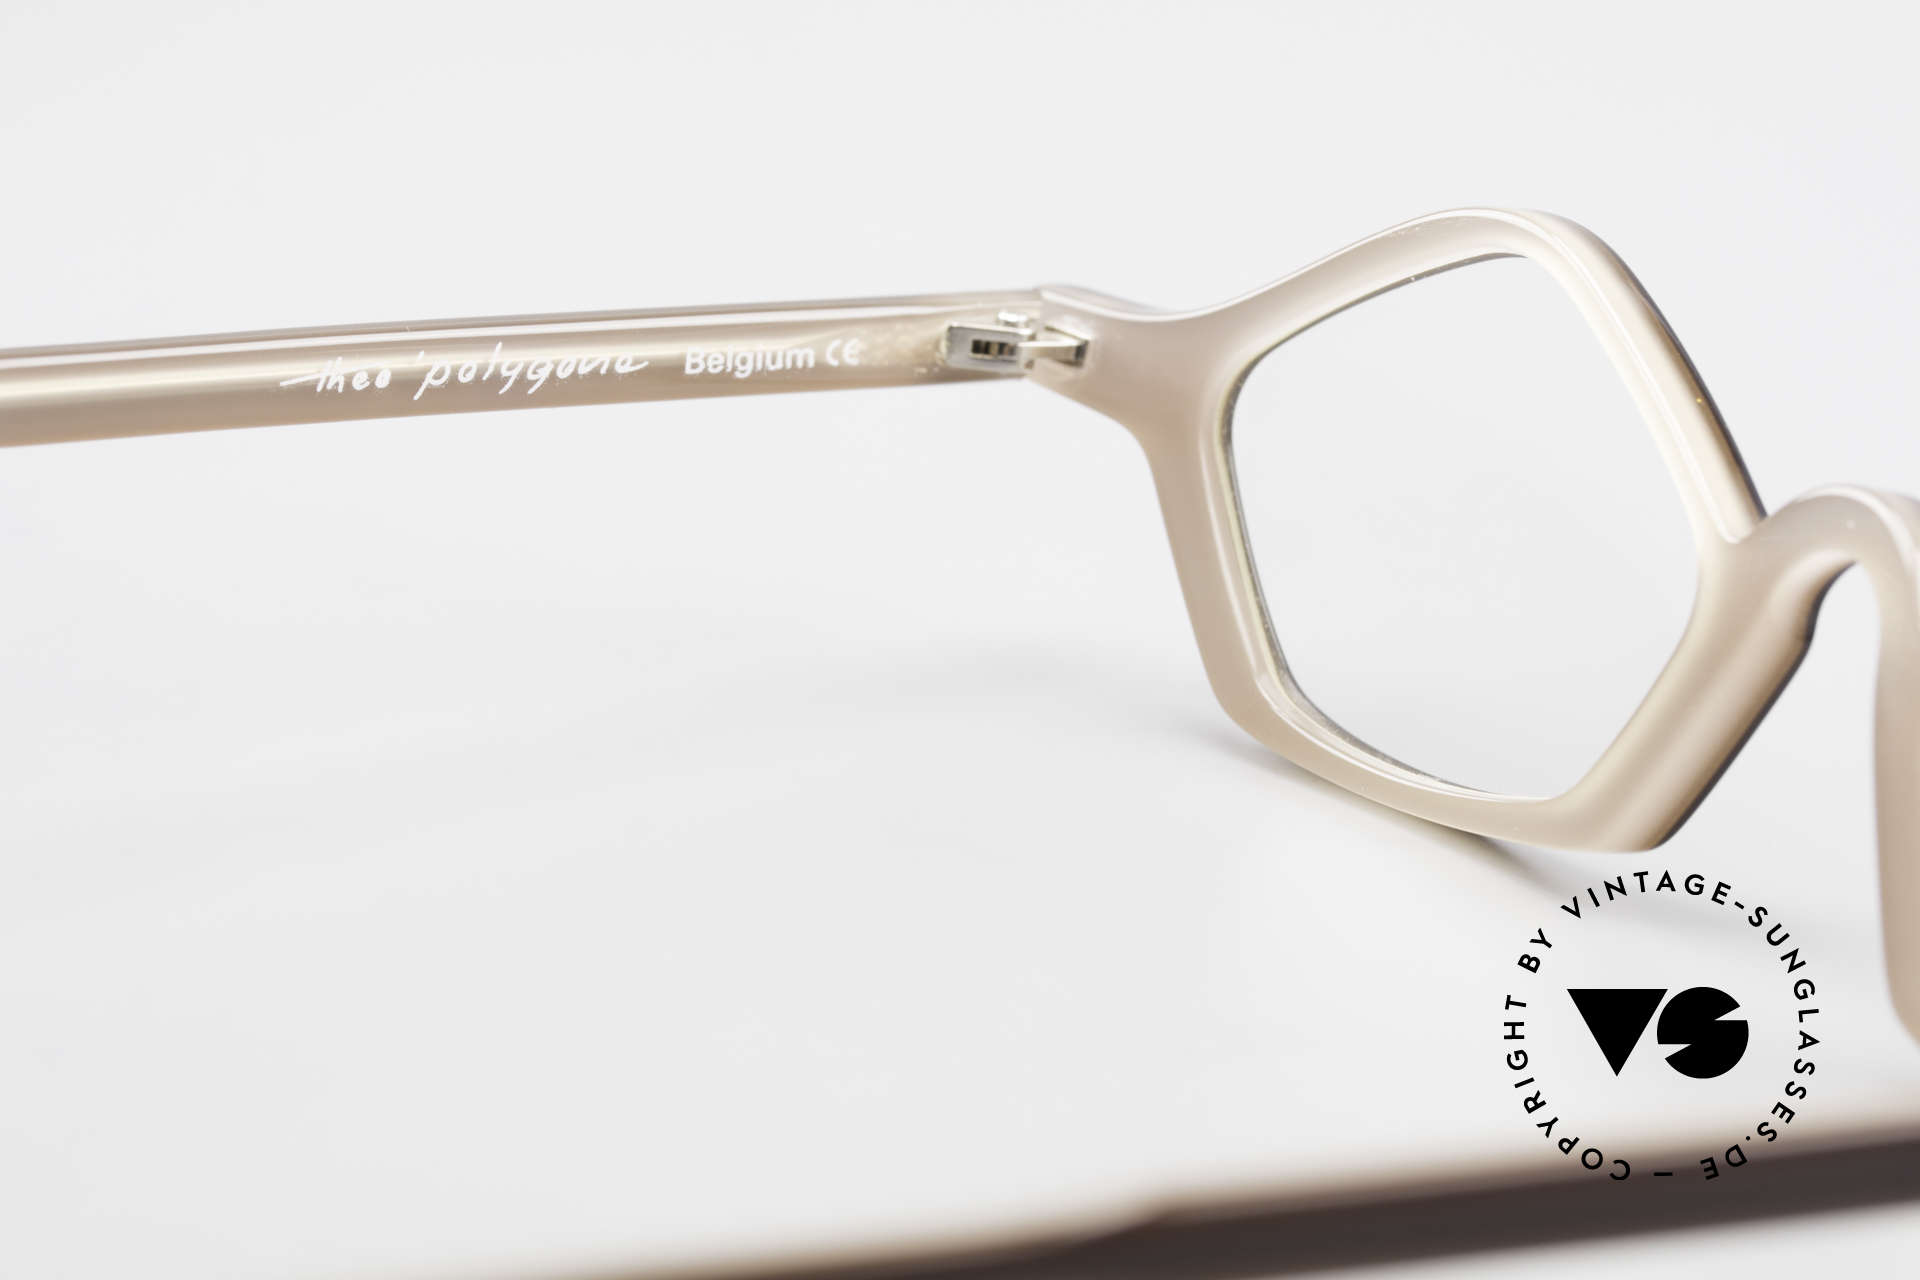 Theo Belgium Polygone Geometrical Plastic Eyeglasses, Size: small, Made for Men and Women